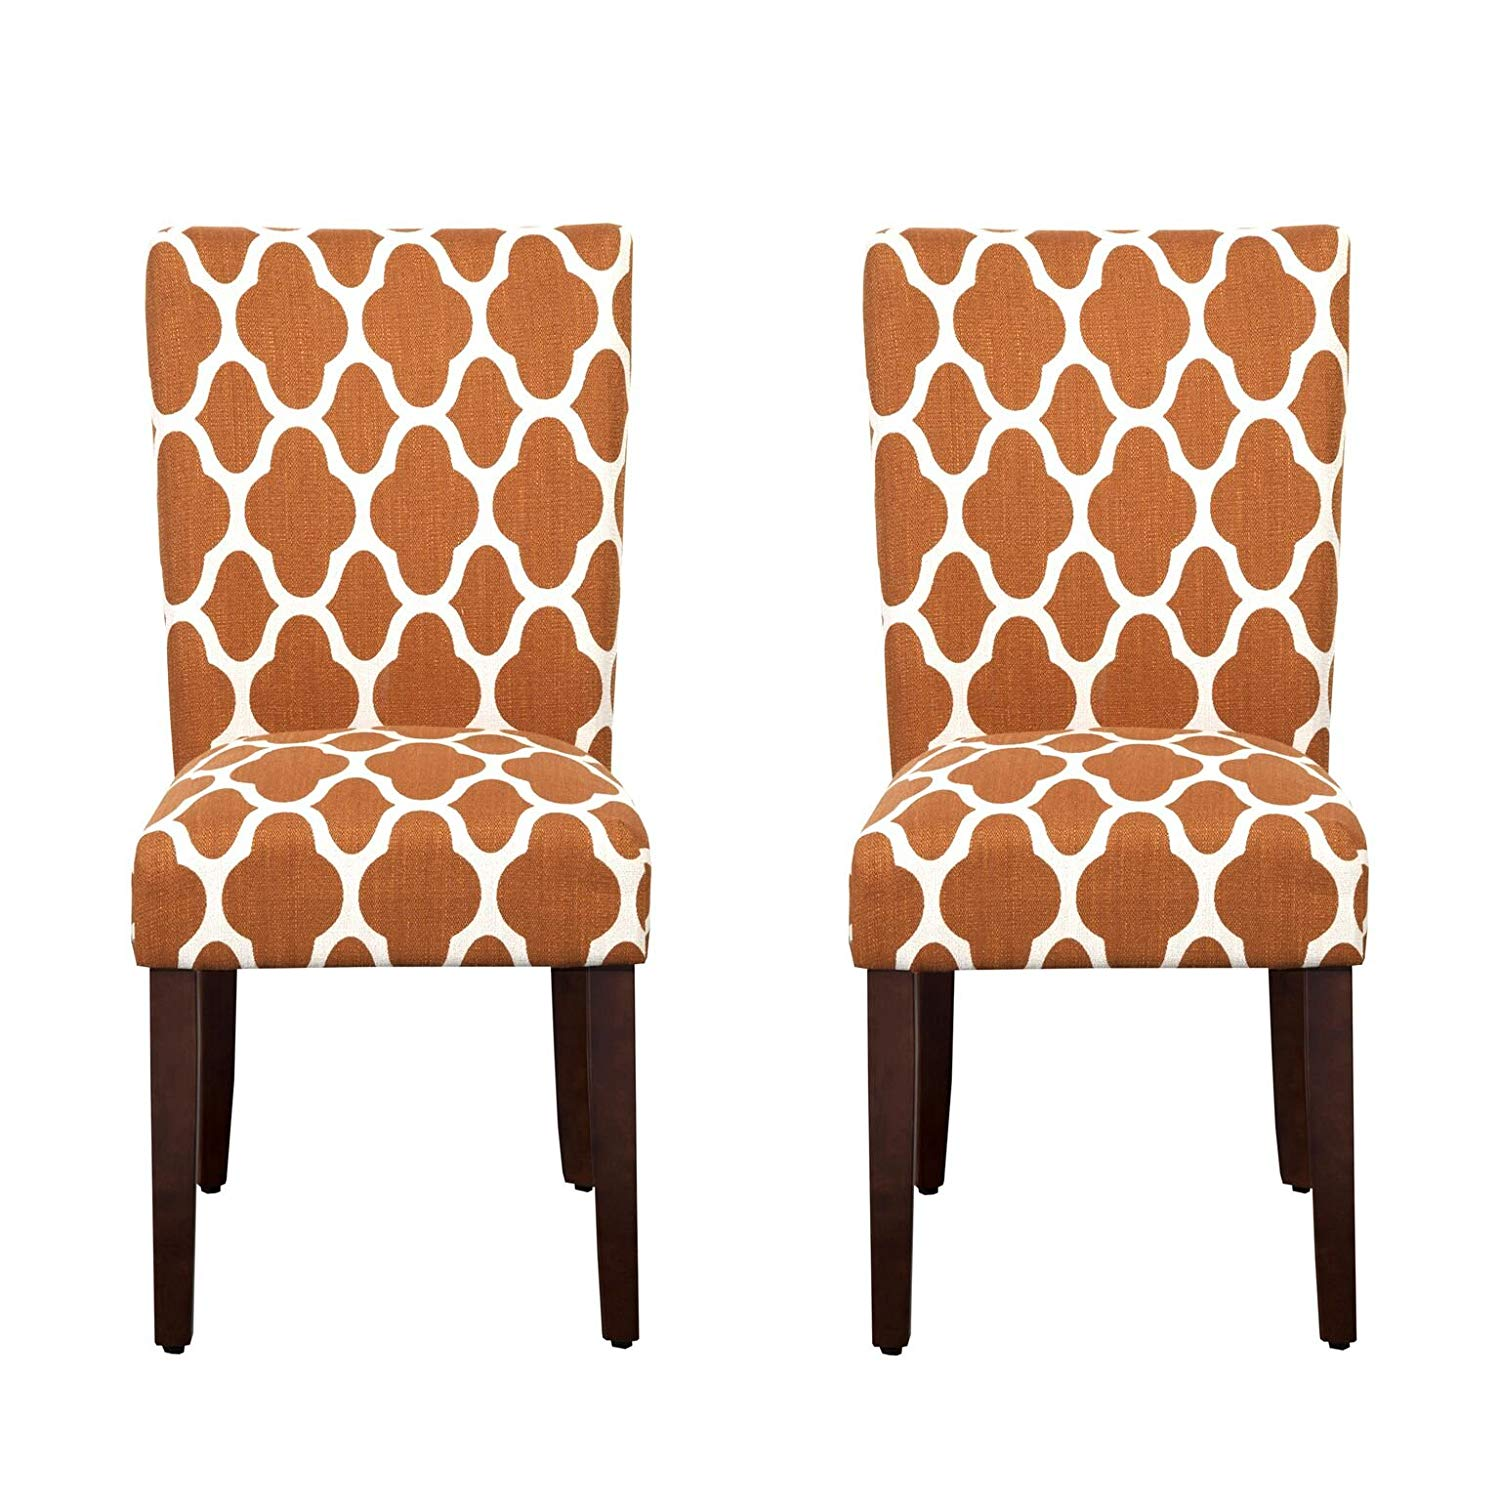 homepop parsons classic upholstered accent dining chair room furniture set rust and cream geometric chairs square glass gold coffee table white wood nest tables small cherry end